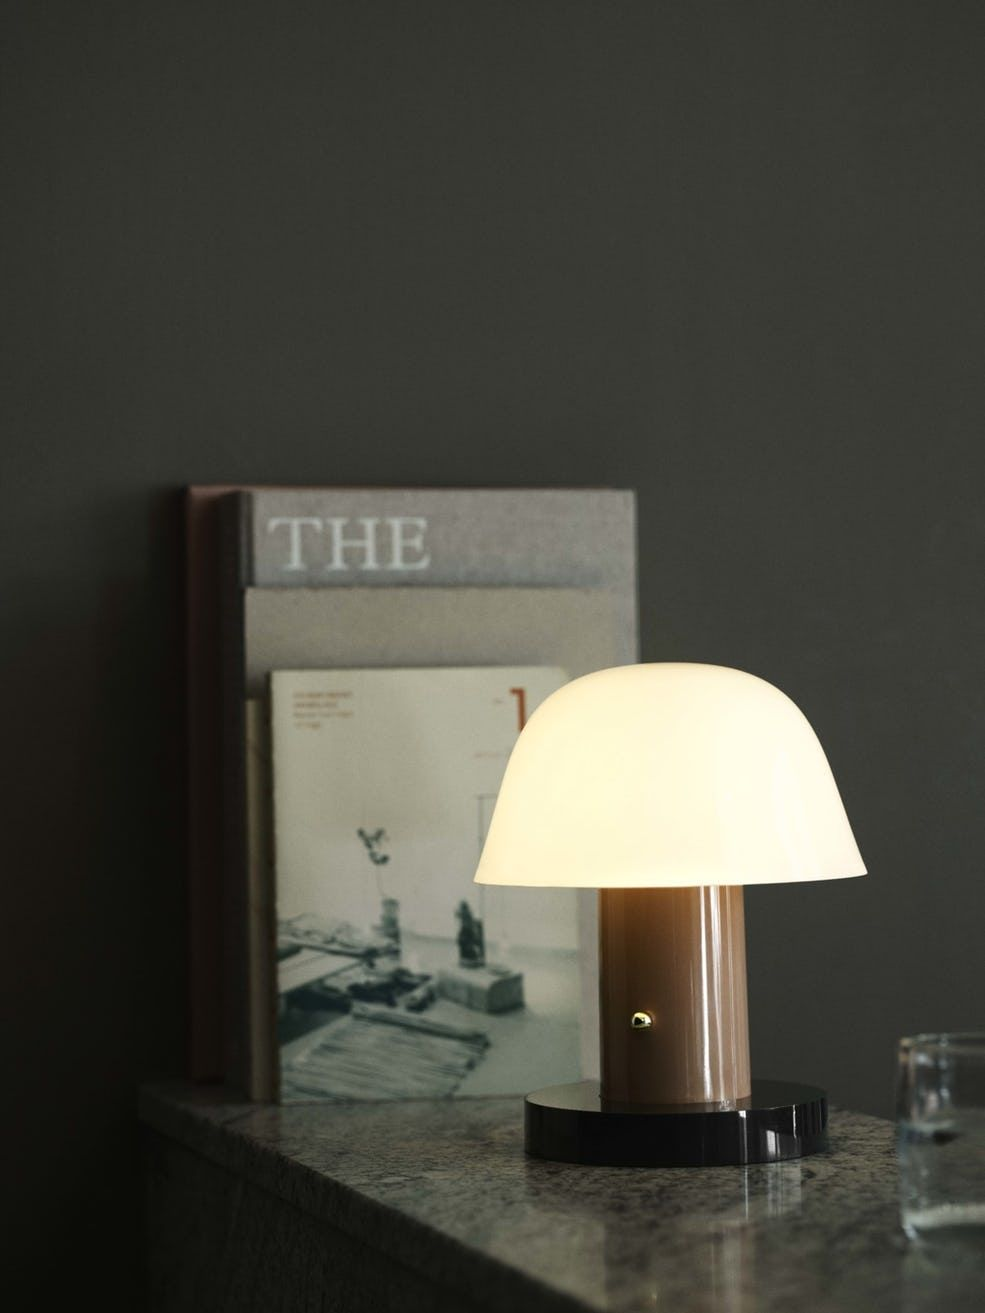 Win This Setago Table Lamp By Tradition In 2020 Table Lamp Table Lamp Design Quirky Table Lamp